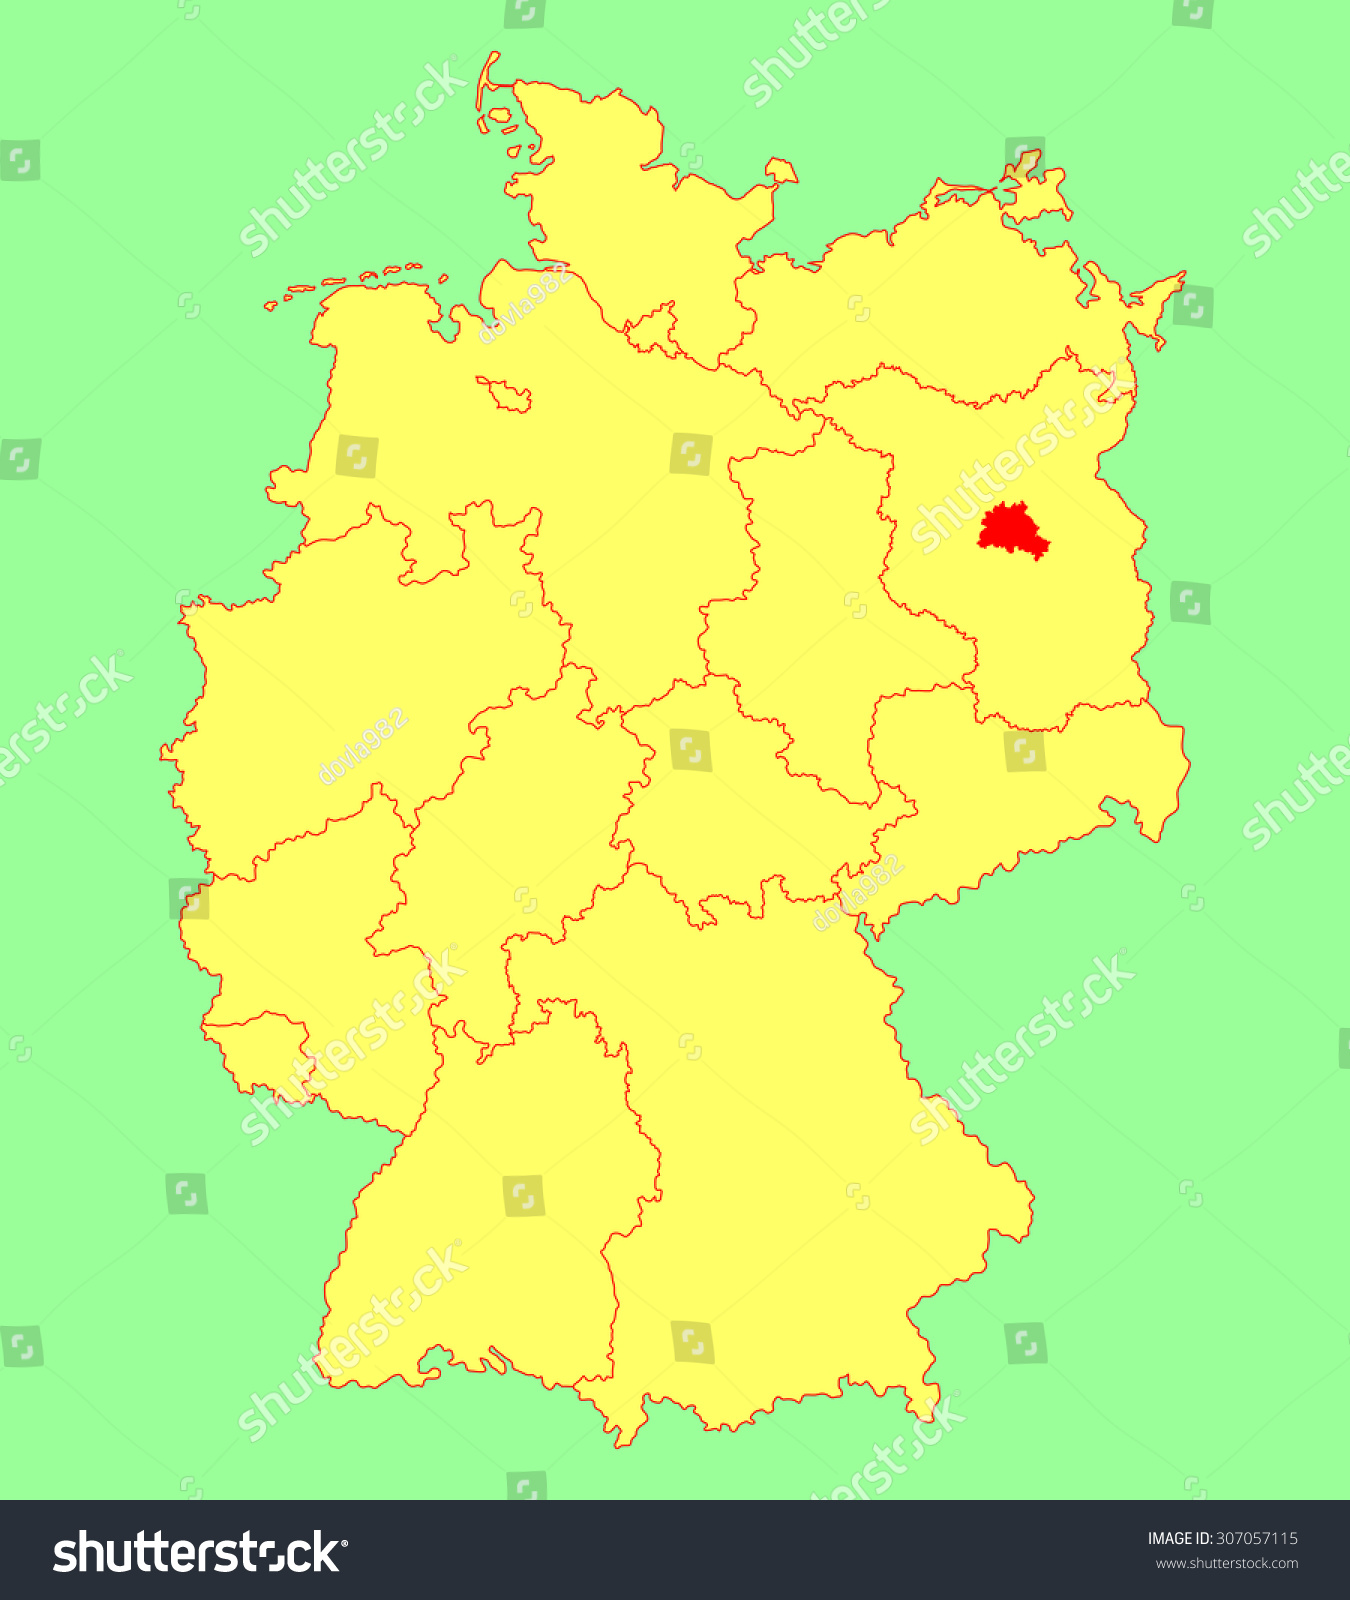 Berlin State Map Germany Vector Map Stock Vector - Berlin map in germany